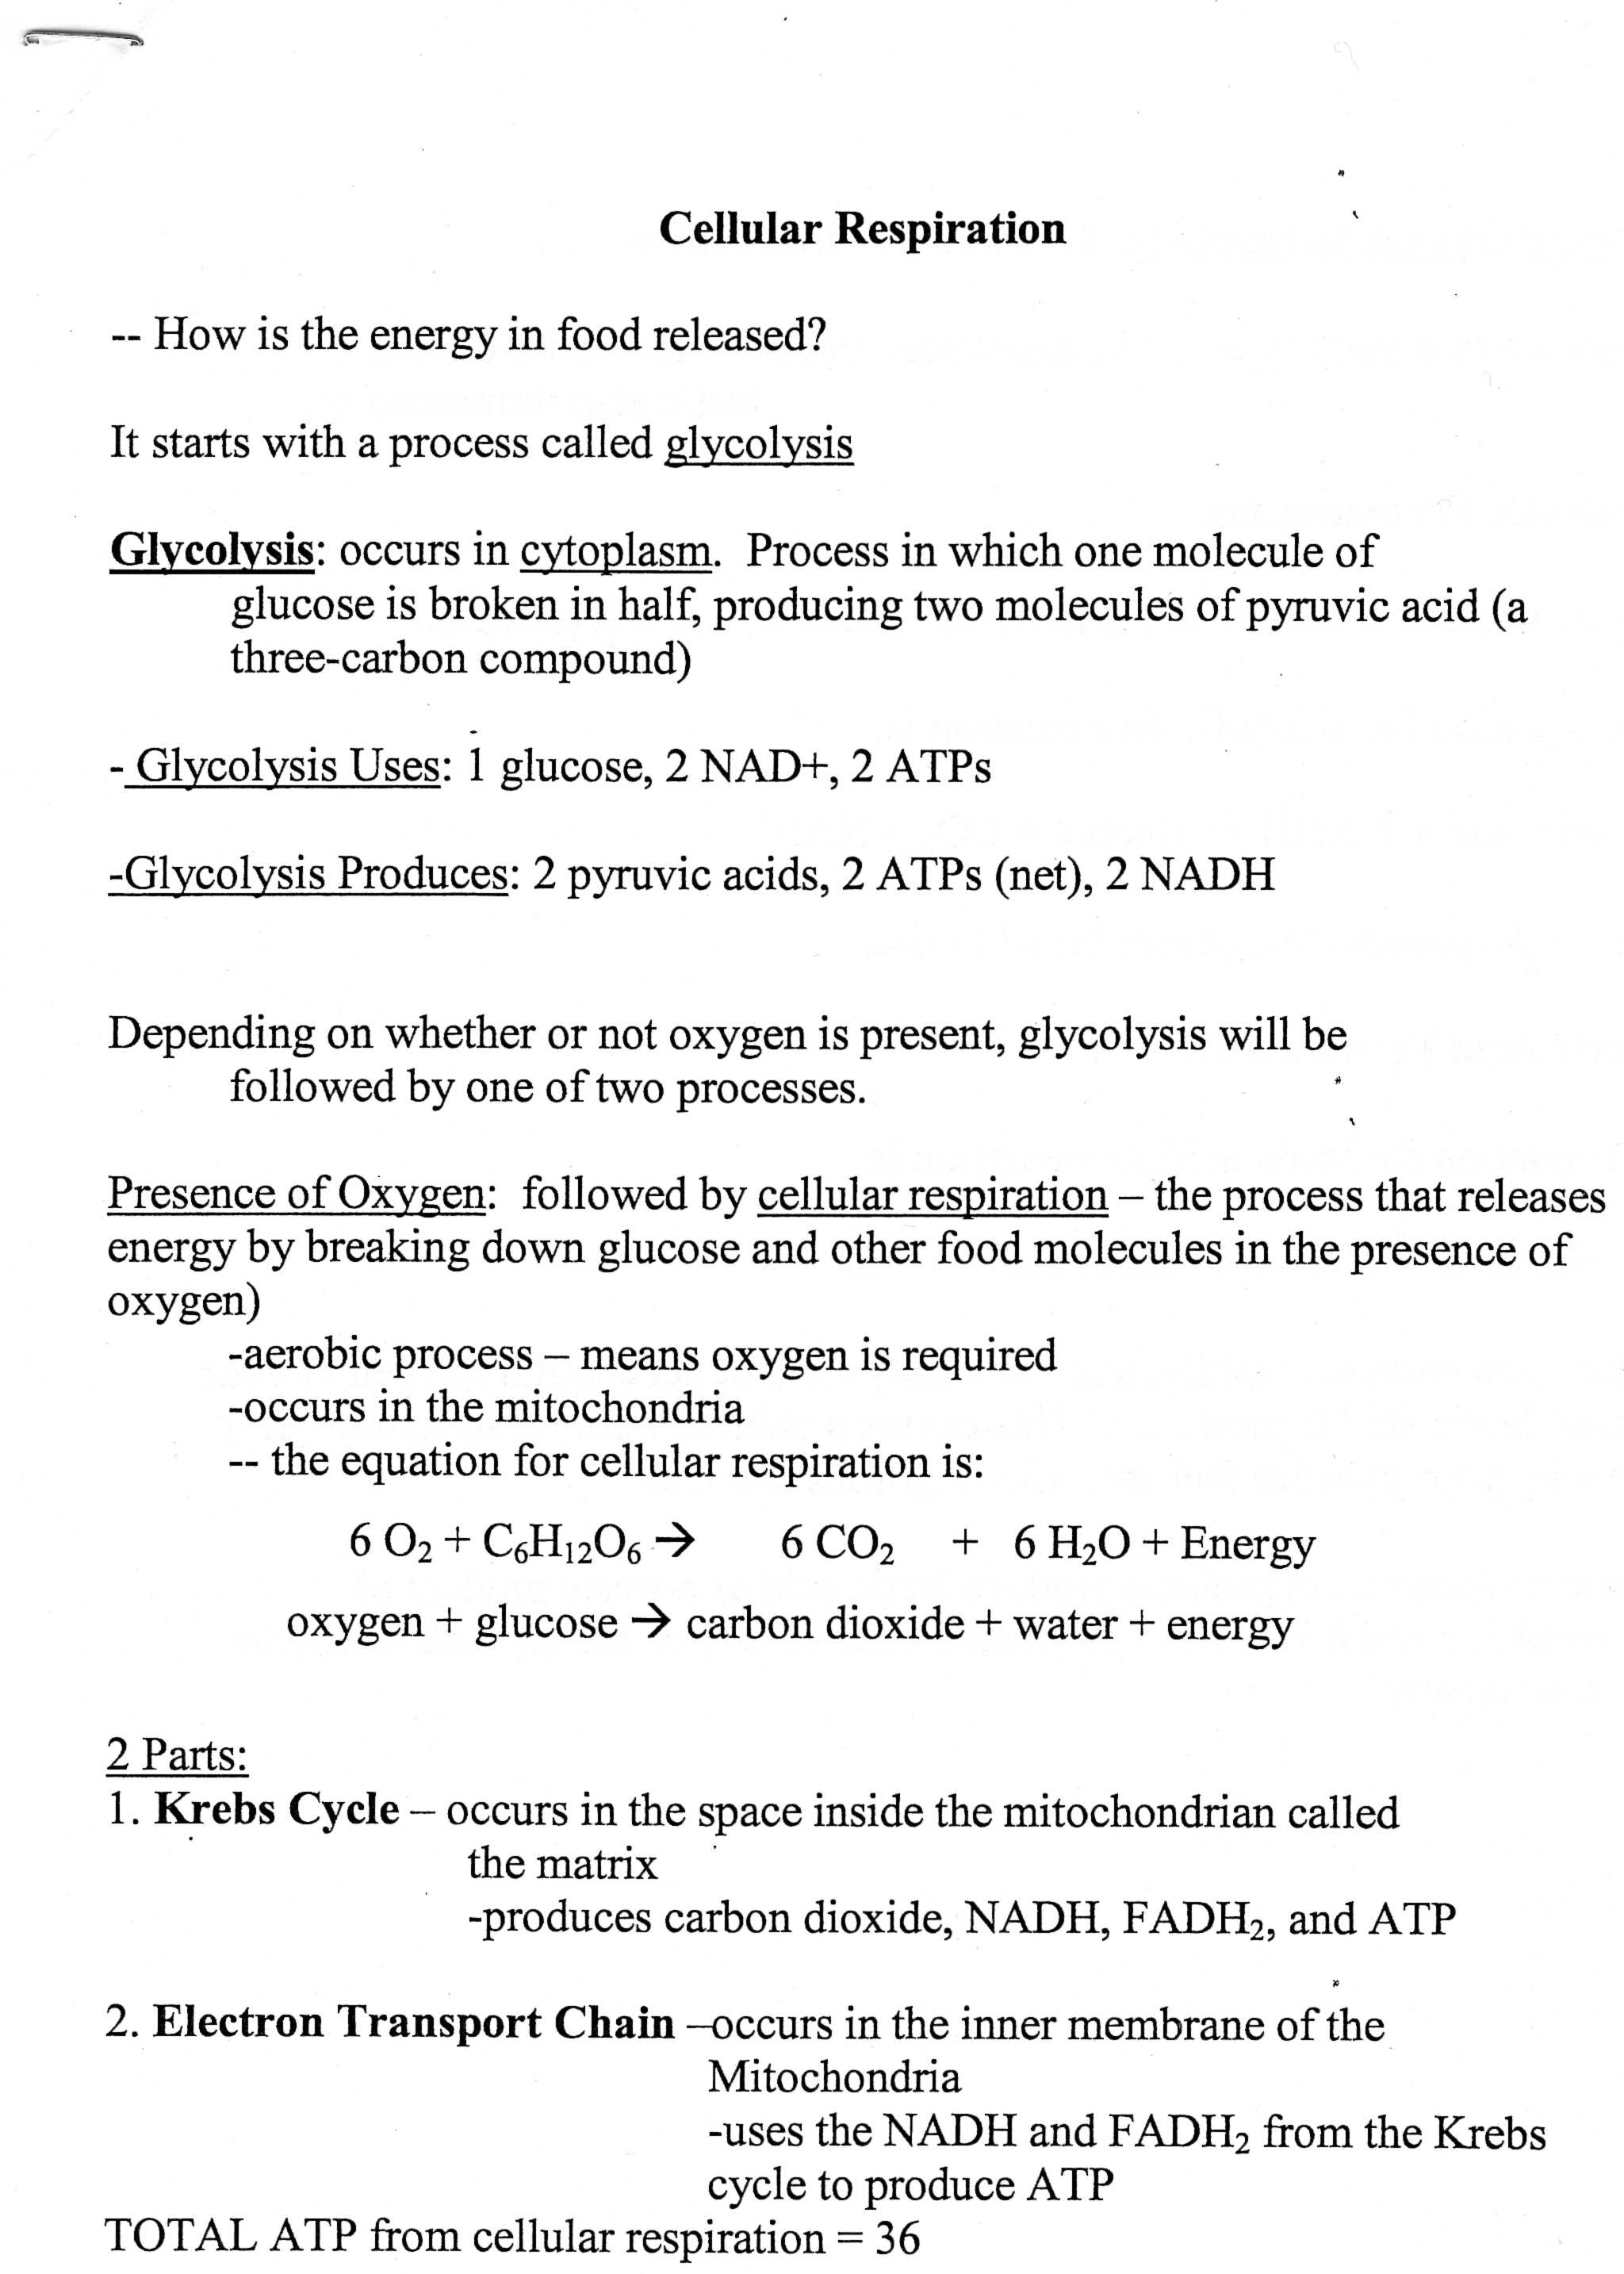 The Absorption Of Light by Photosynthetic Pigments Worksheet Answers together with Synthesis Starts with Worksheet Answers 28d8ed312a9b Battk